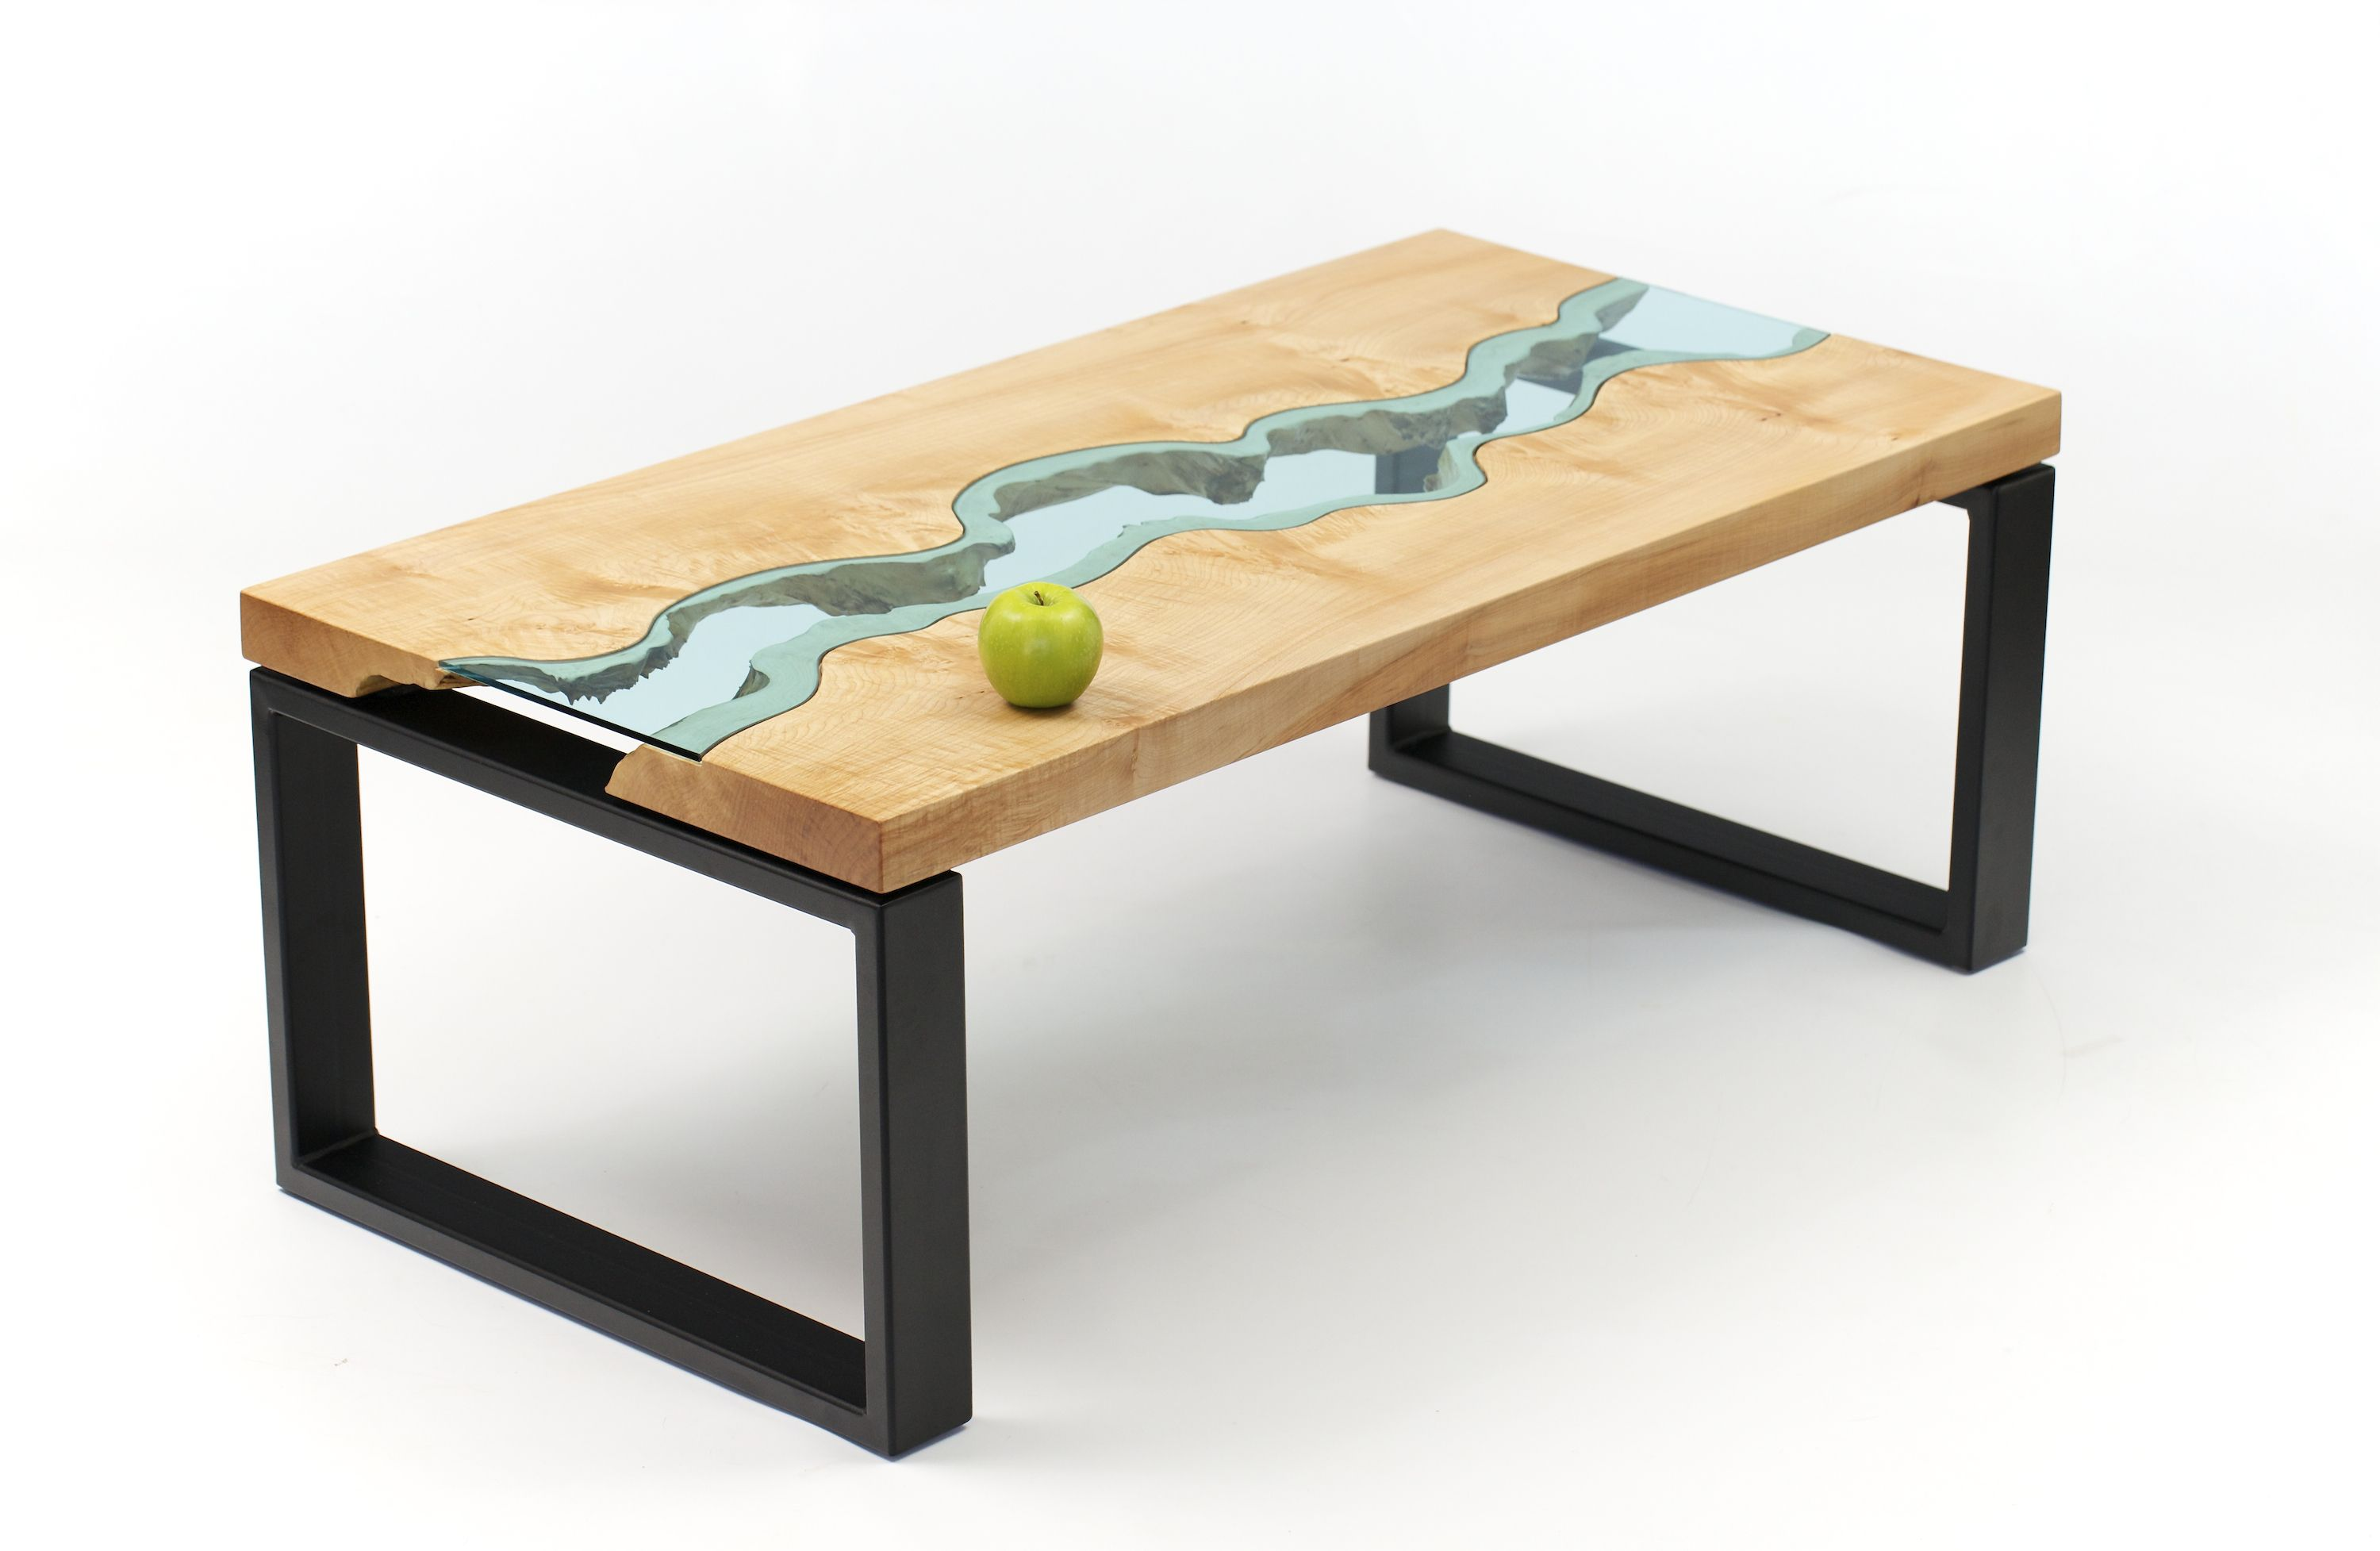 River Coffee Table No 2 is a table made of maple and glass It s